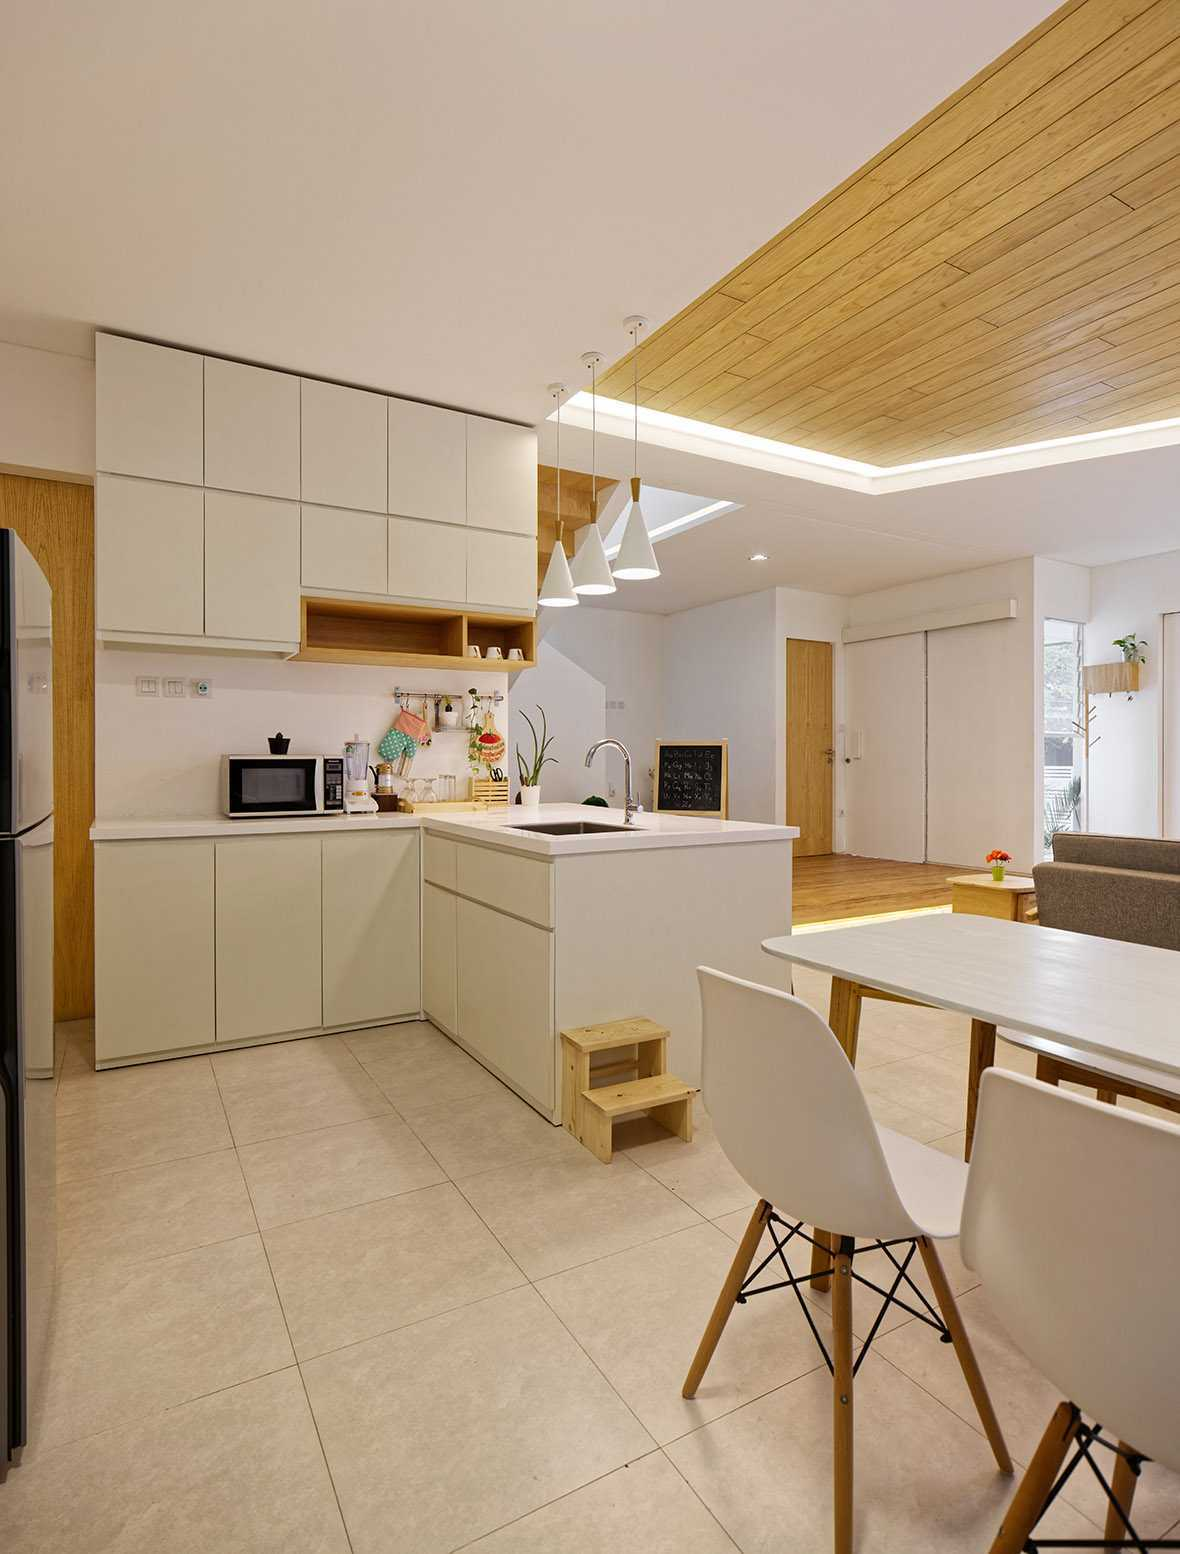 Delution Architect Inset House Jatibening, Pondokgede, Bekasi City, West Java, Indonesia Jatibening, Pondokgede, Bekasi City, West Java, Indonesia Kitchen Room Kontemporer,modern  36752